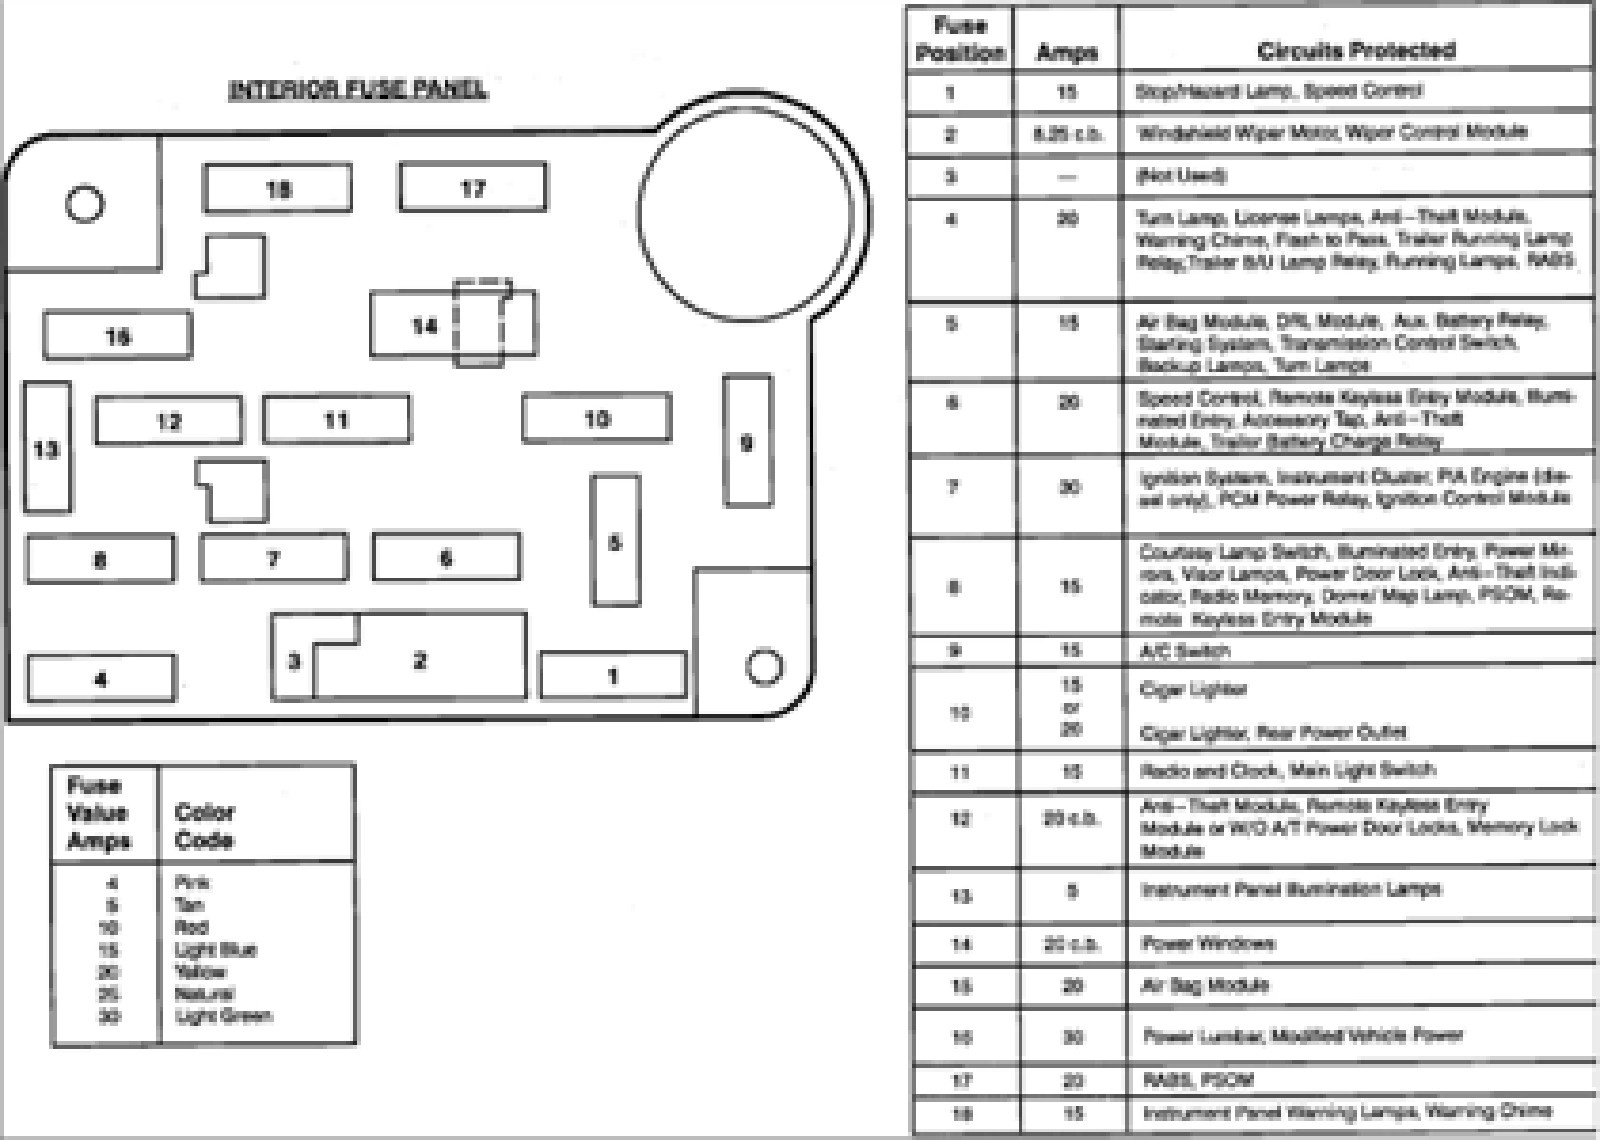 1993 ford e150 fuse diagram trusted wiring diagram ford e 150 questions fuse diagram for a 1993 ford econoline van ford e150 wiring diagram 1993 ford e150 fuse diagram publicscrutiny Gallery